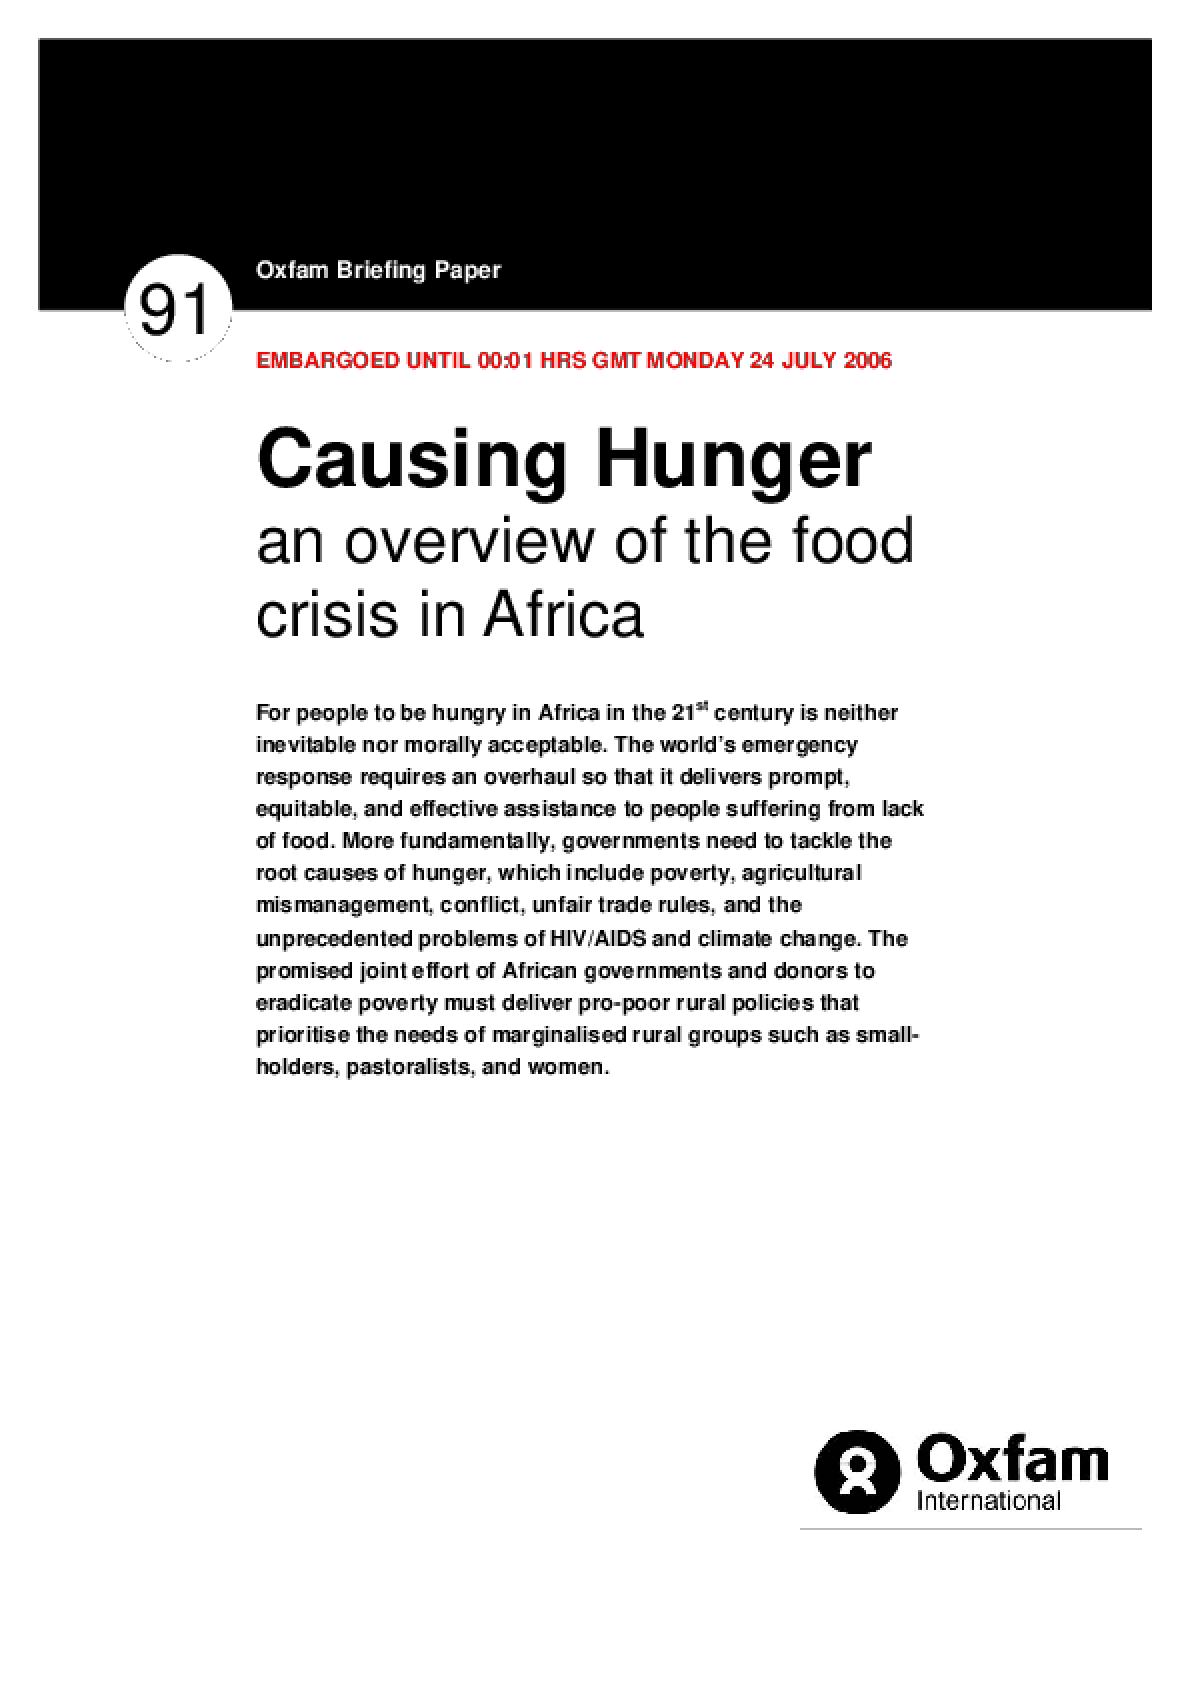 Causing Hunger: An overview of the food crisis in Africa